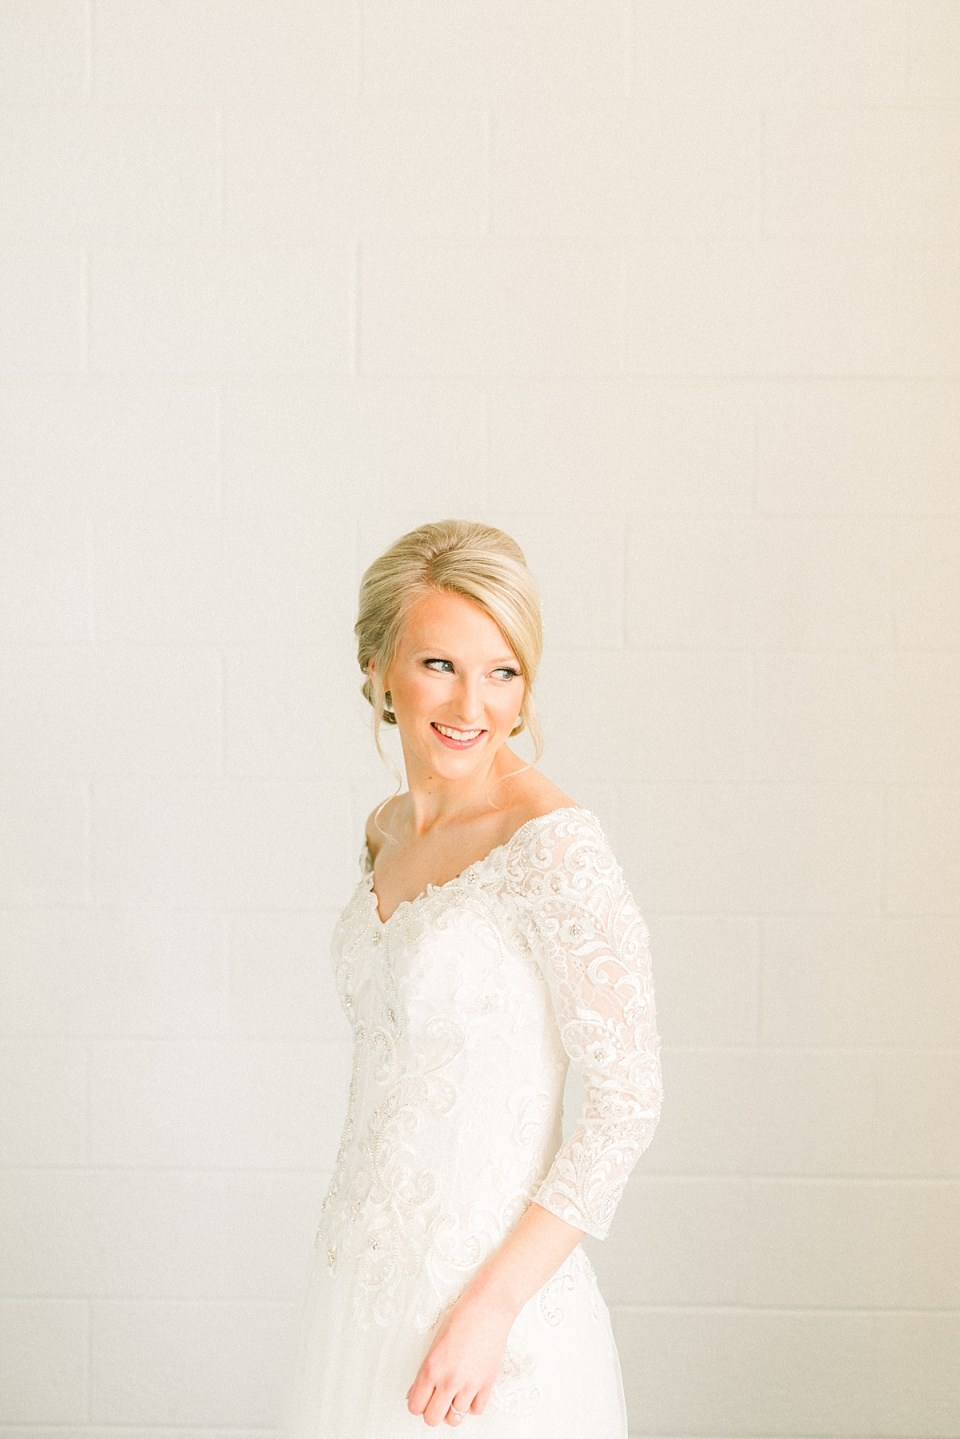 Arielle Peters Photography | Bride smiling in her dress on her fall wedding day.